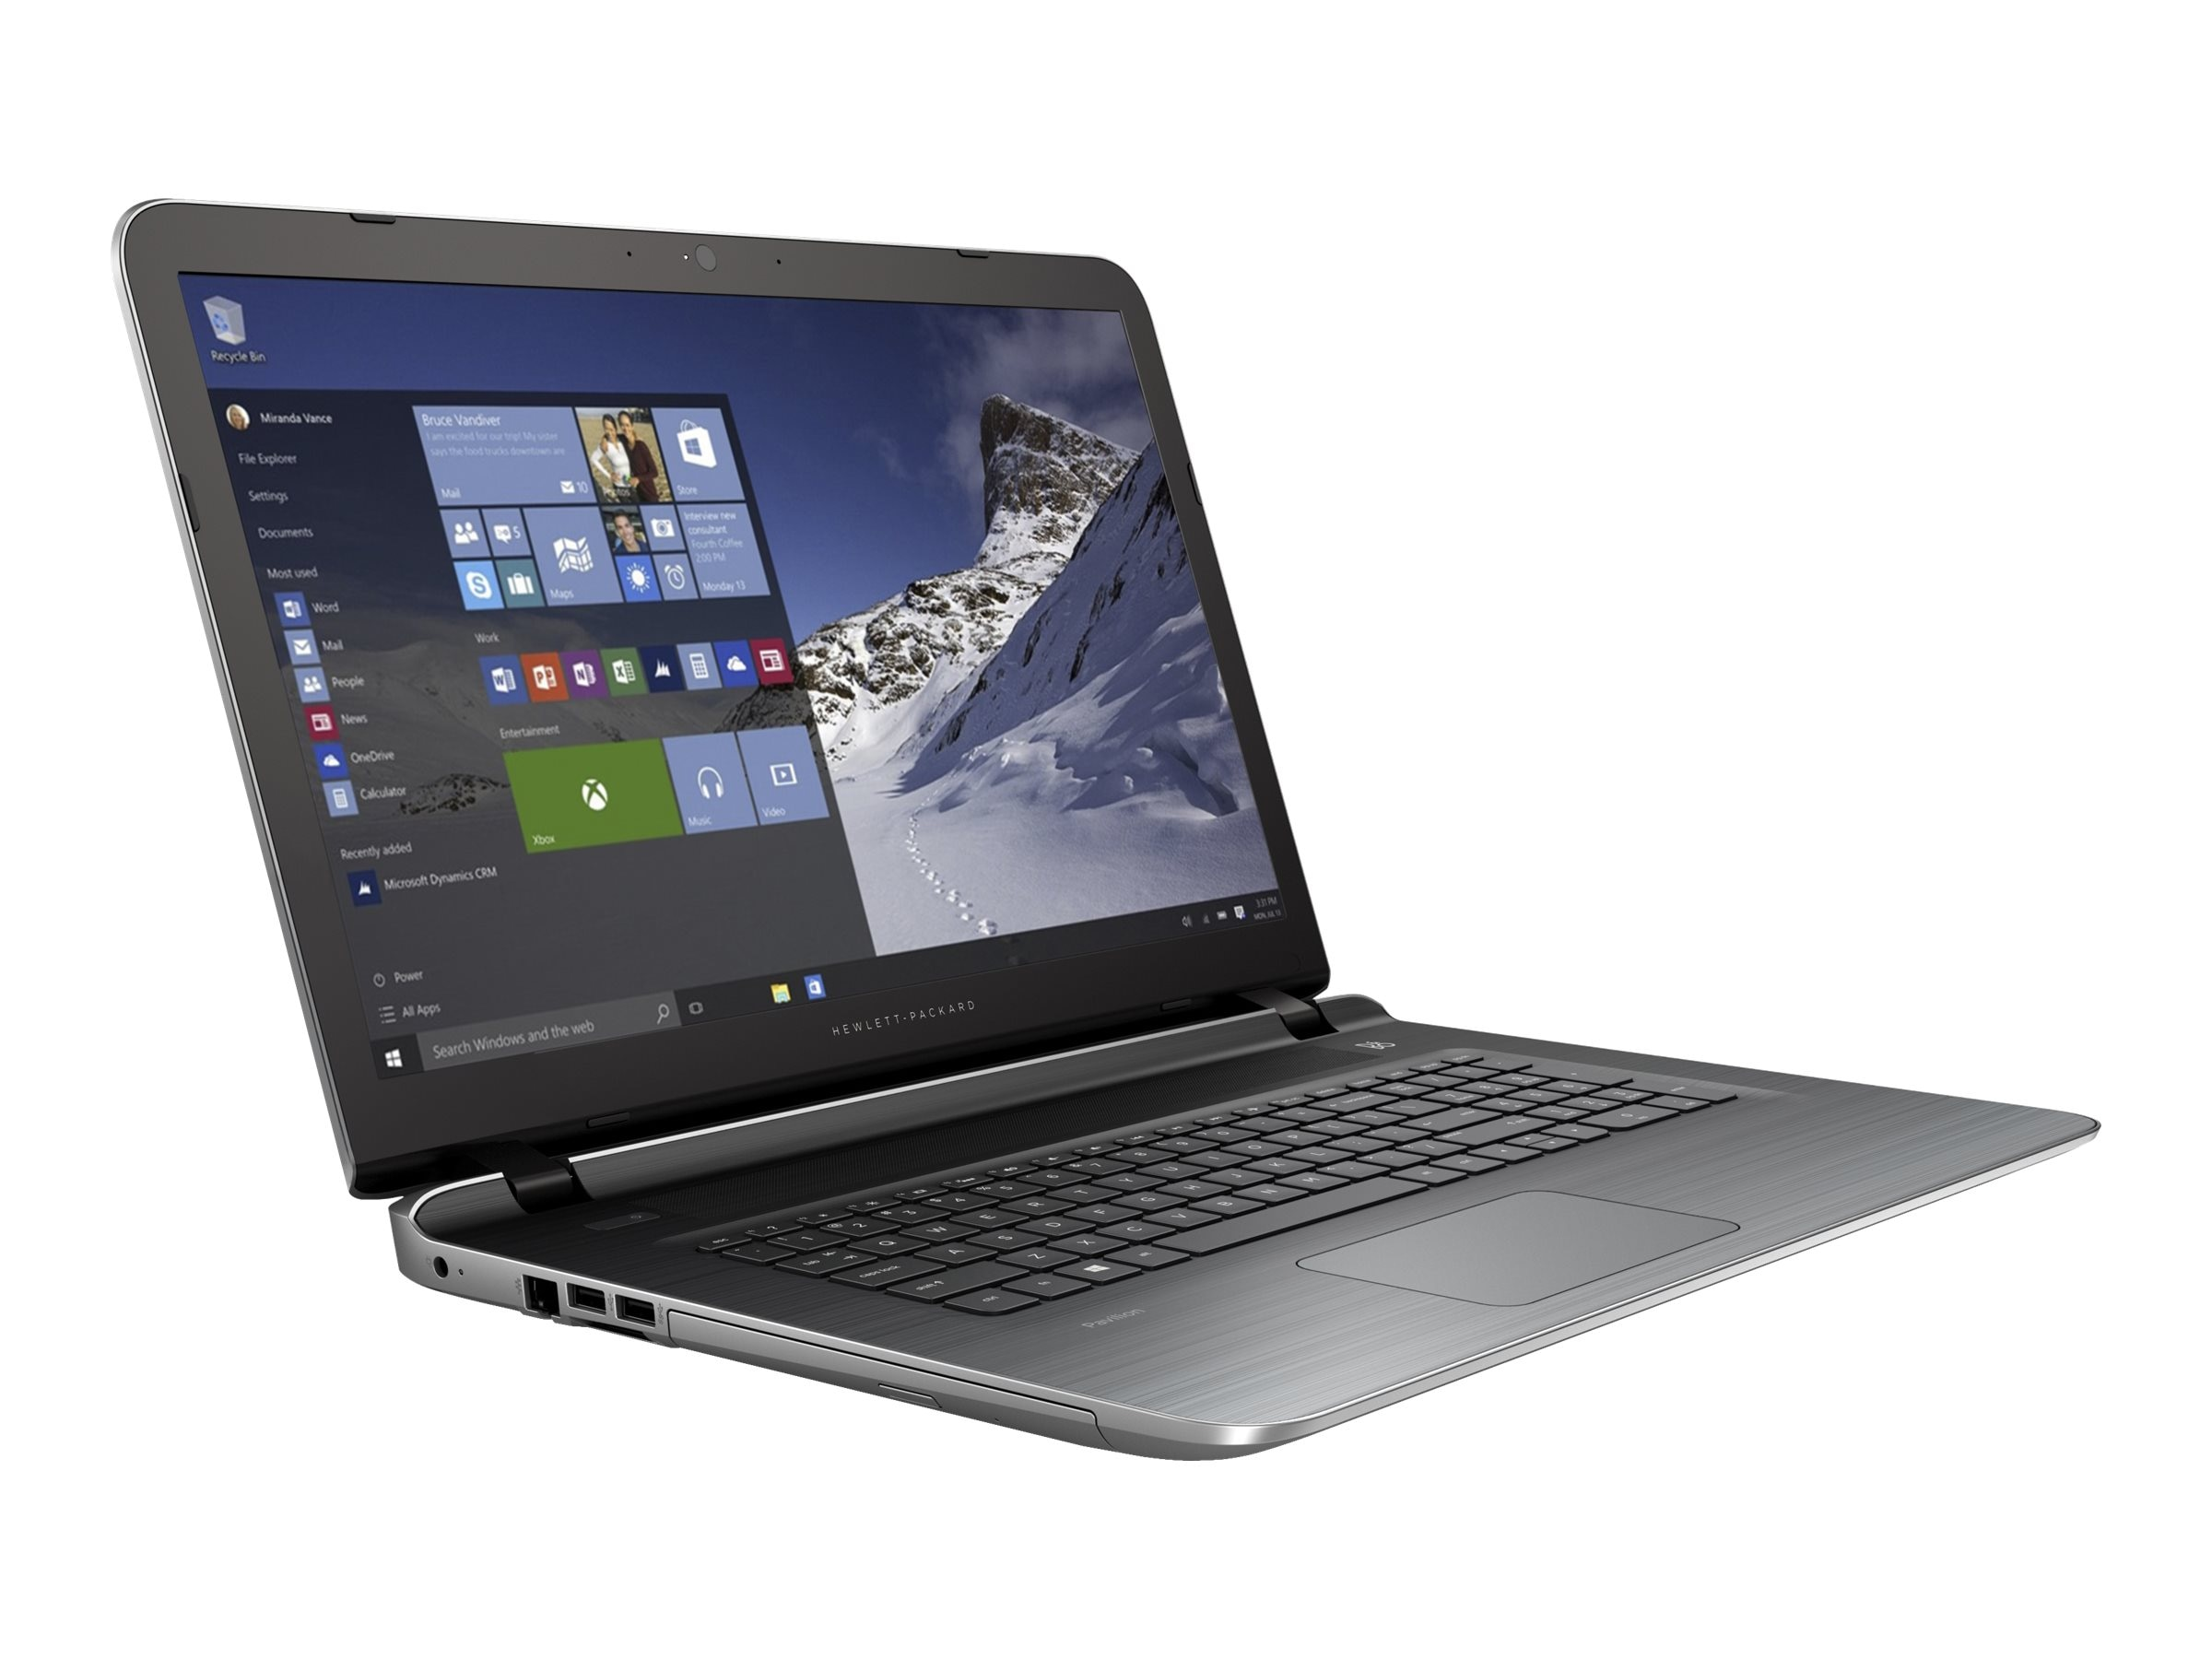 HP Pavilion 17-G140nr Notebook PC, N5P44UA#ABA